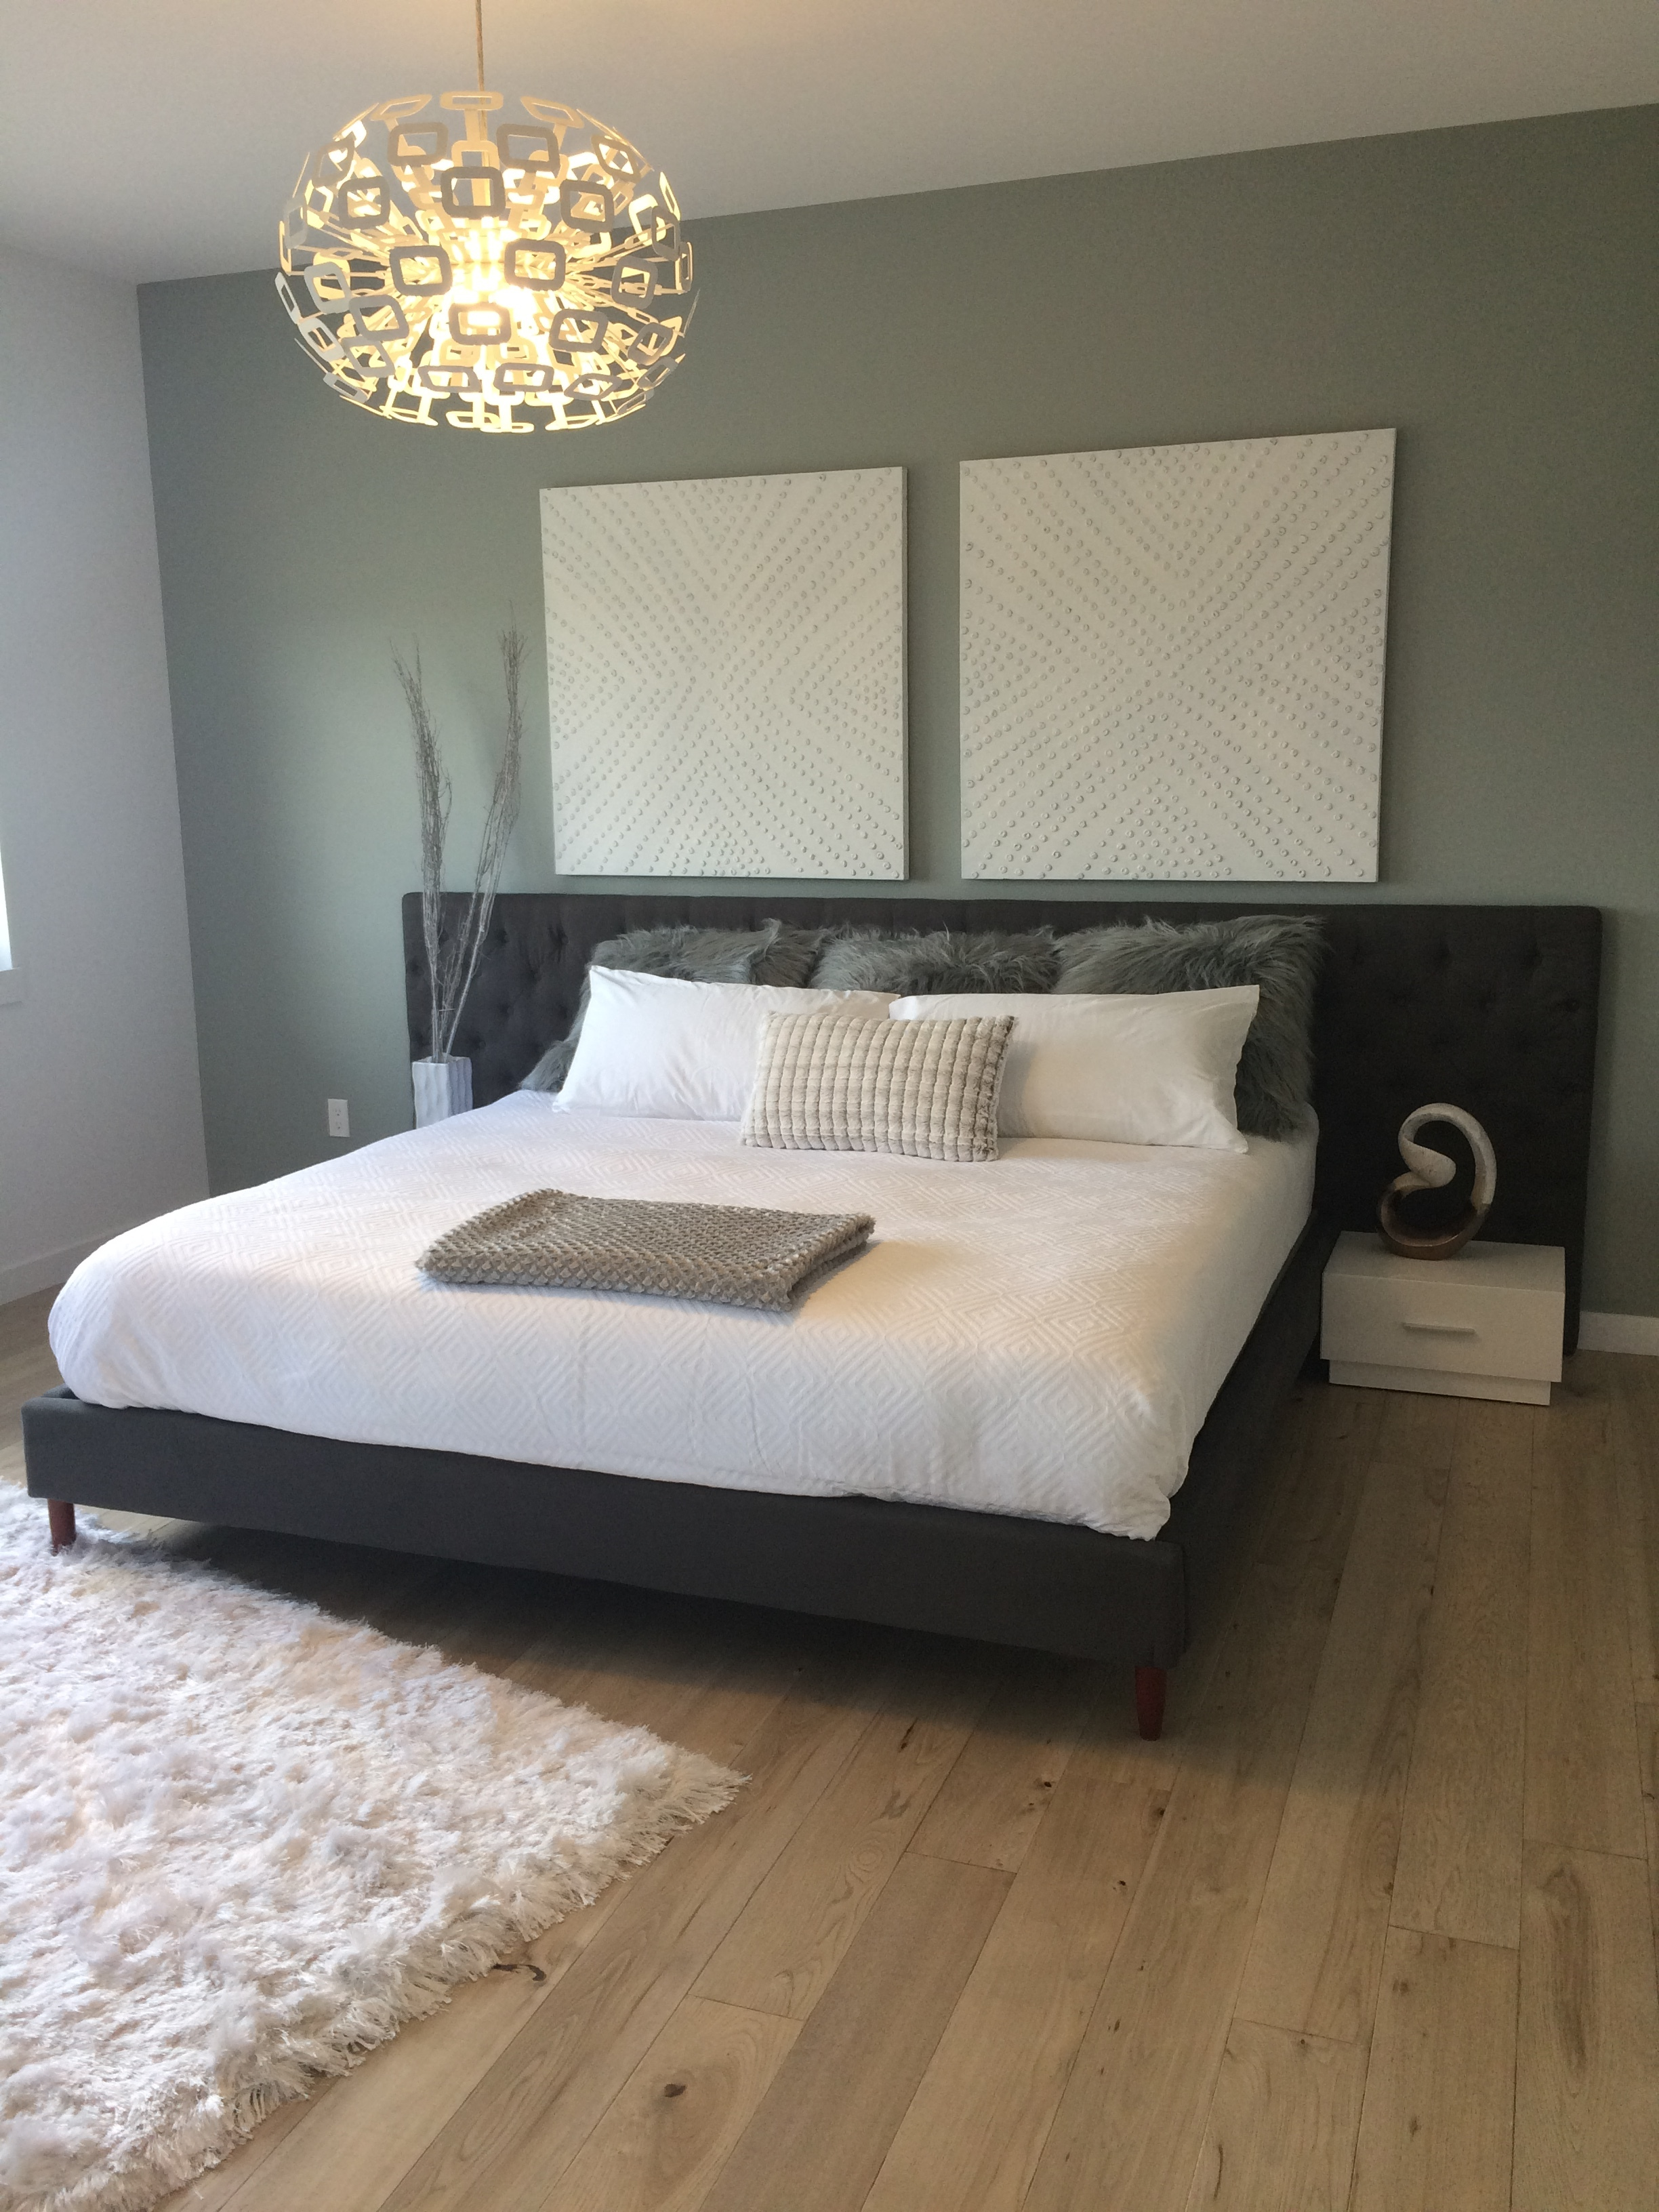 The dreamy comfort of Blue Moon's bed featured in Artista's new Show Home in the 2016 Parade of Homes.